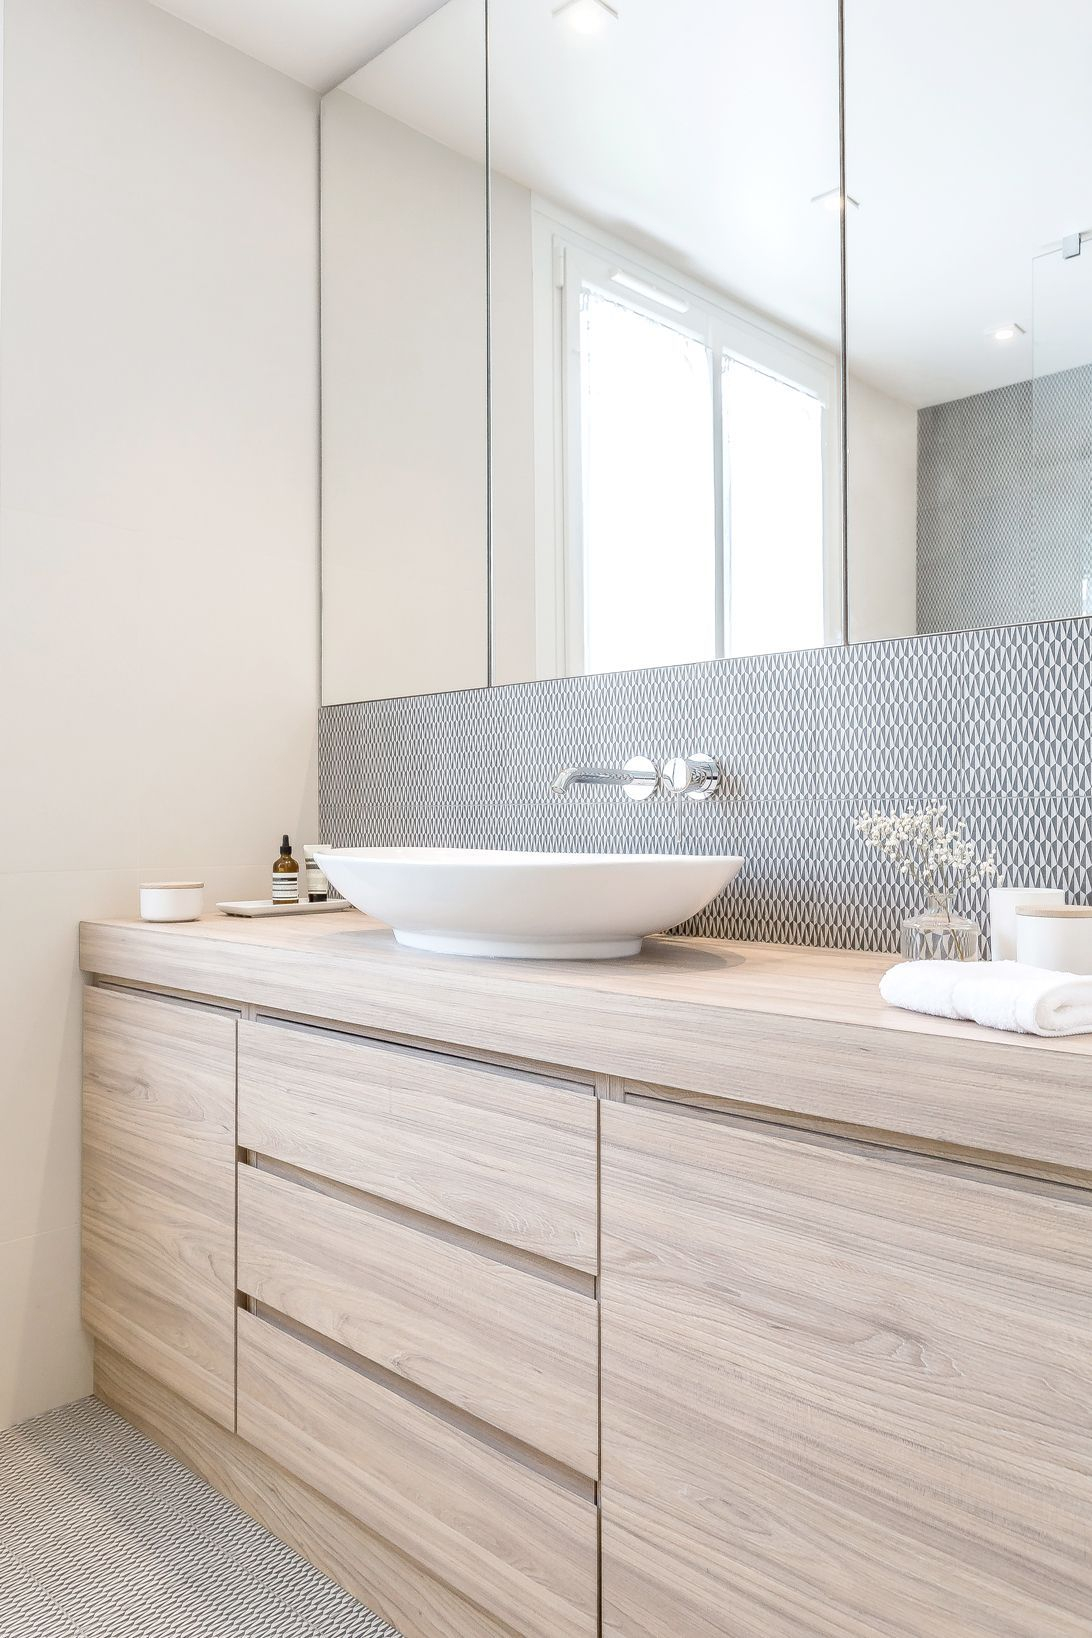 6 Tips To Make Your Bathroom Renovation Look Amazing Its All regarding sizing 1092 X 1638